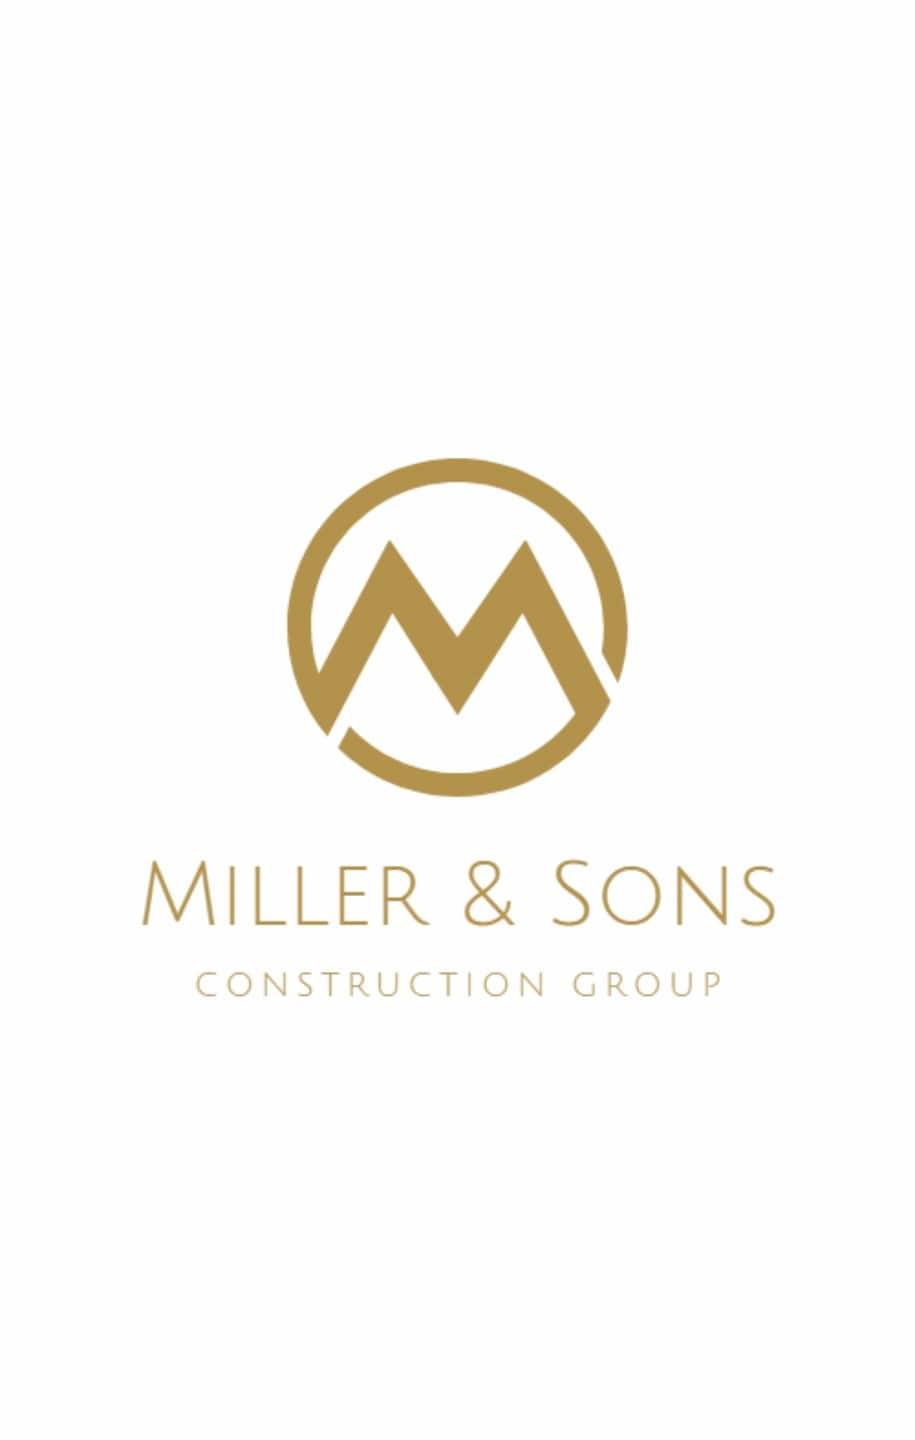 Miller and Sons Construction